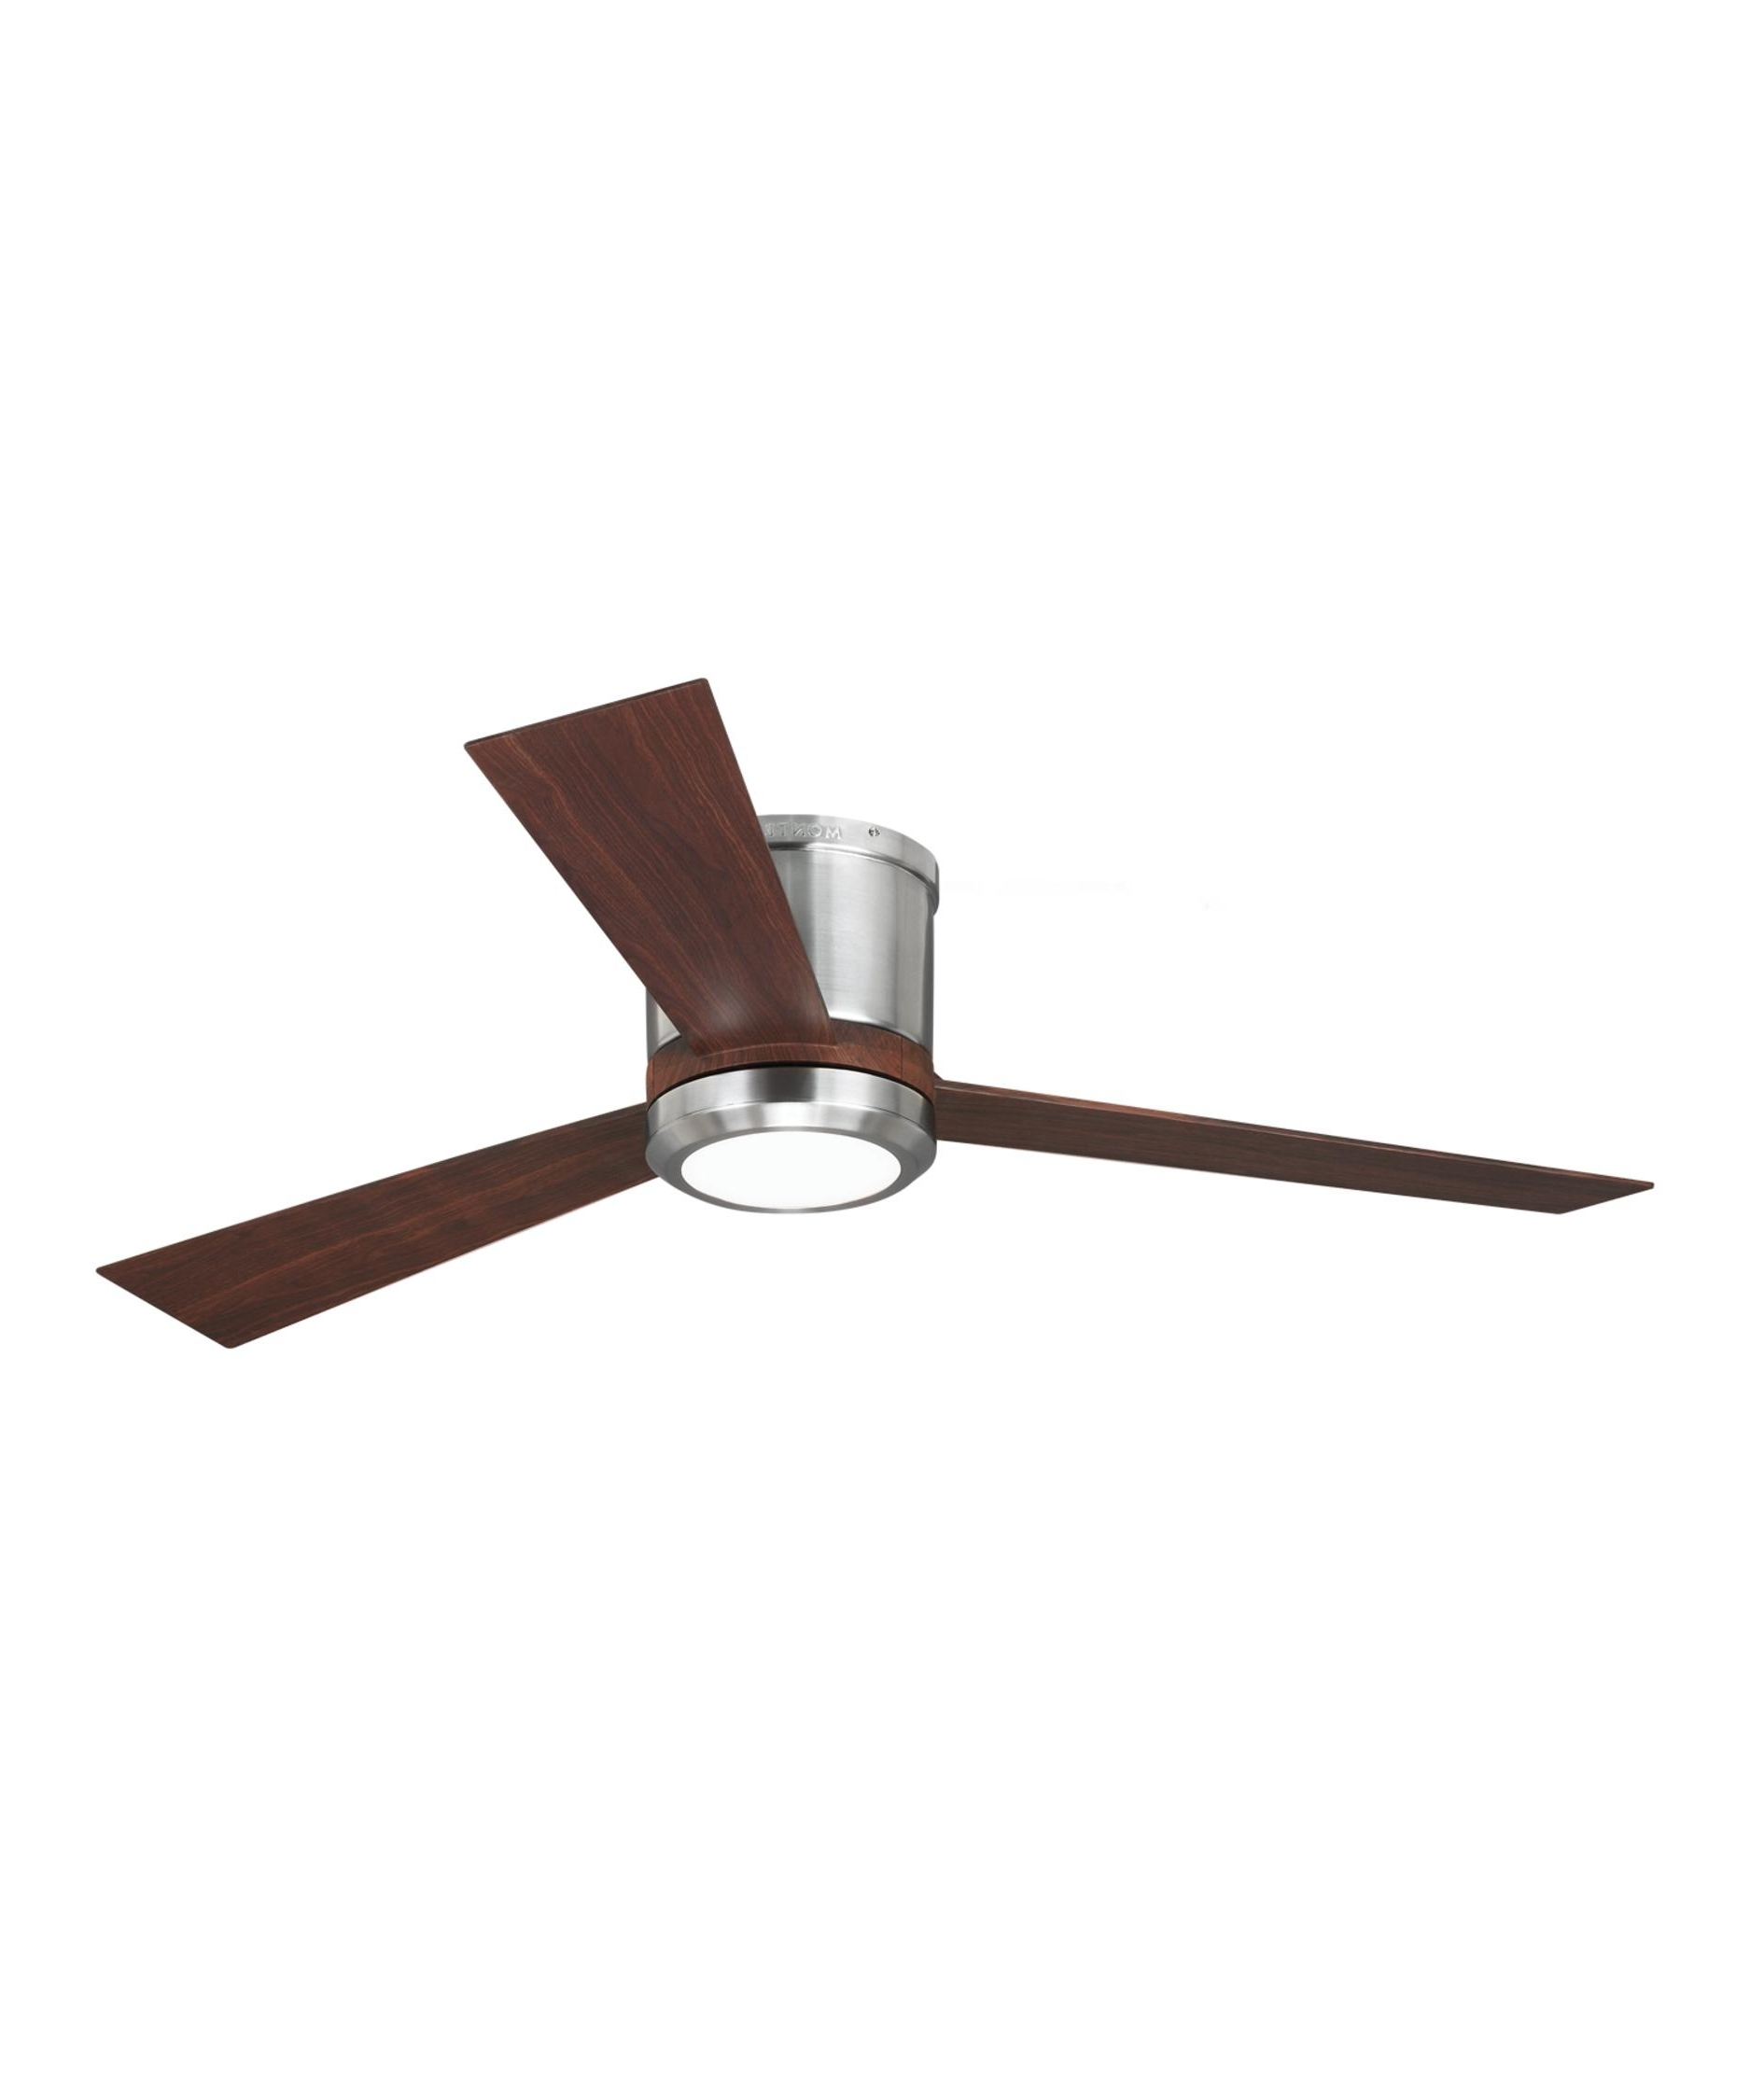 36 Inch Ceiling Fan With Light Flush Mount – Tariqalhanaee In 2019 36 Inch Outdoor Ceiling Fans With Light Flush Mount (View 4 of 20)